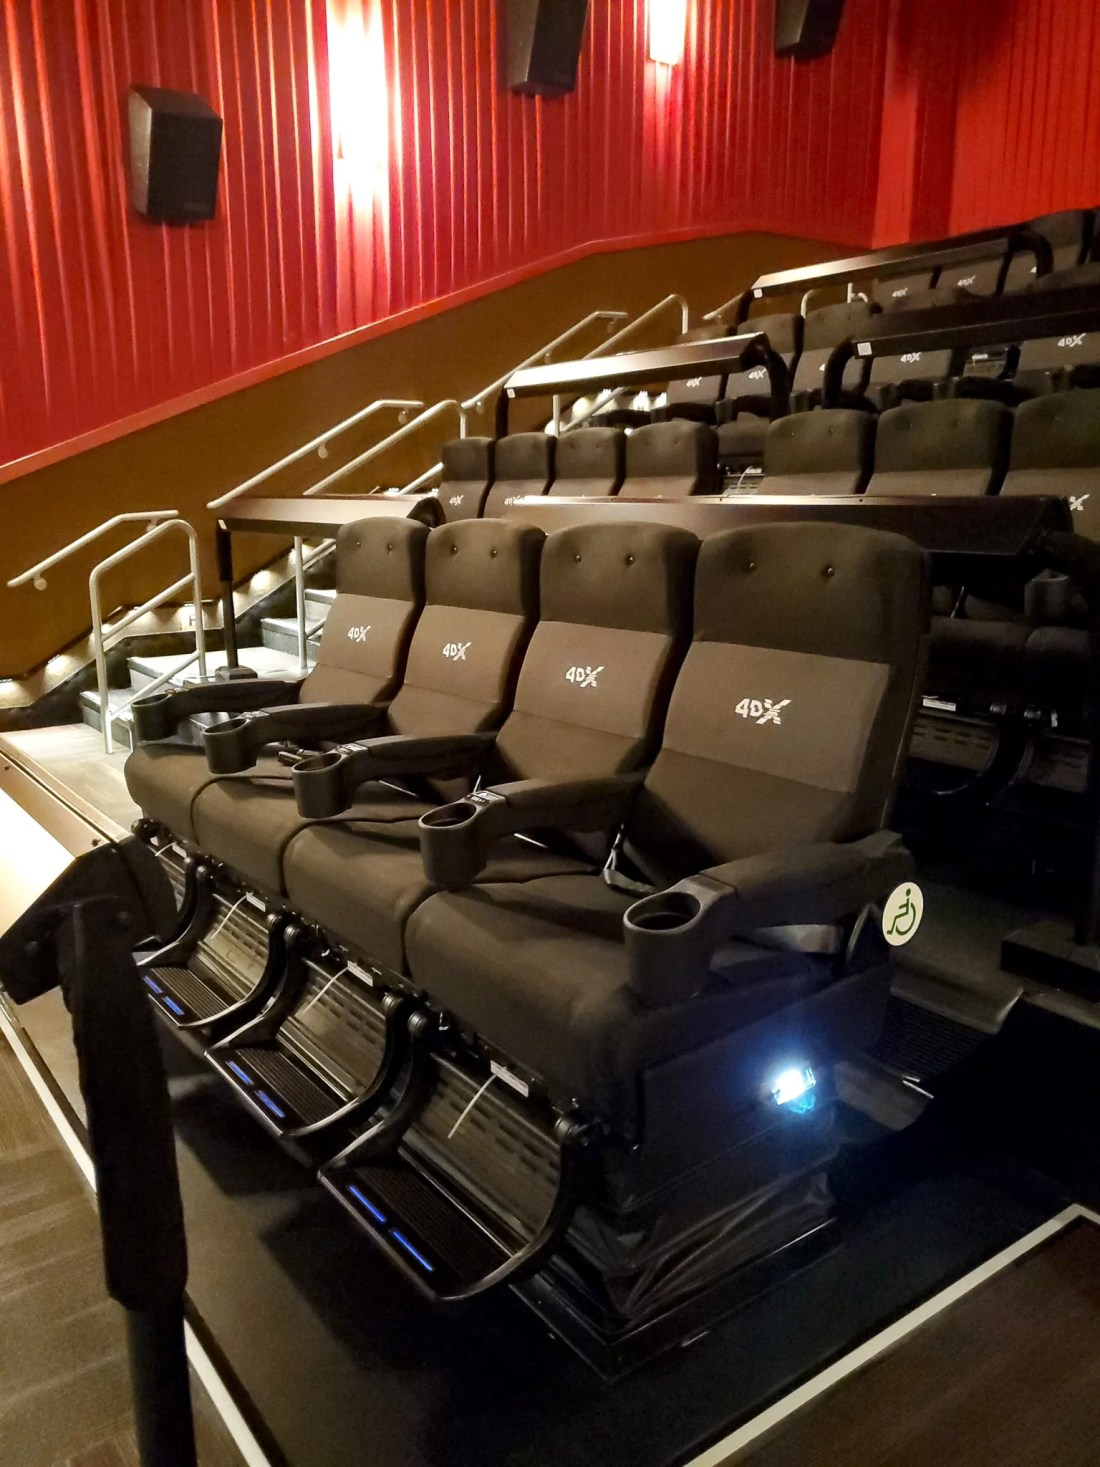 Regal Cinema 4DX Experience Seats. Dumbo flies into theaters on March 29, 2019.